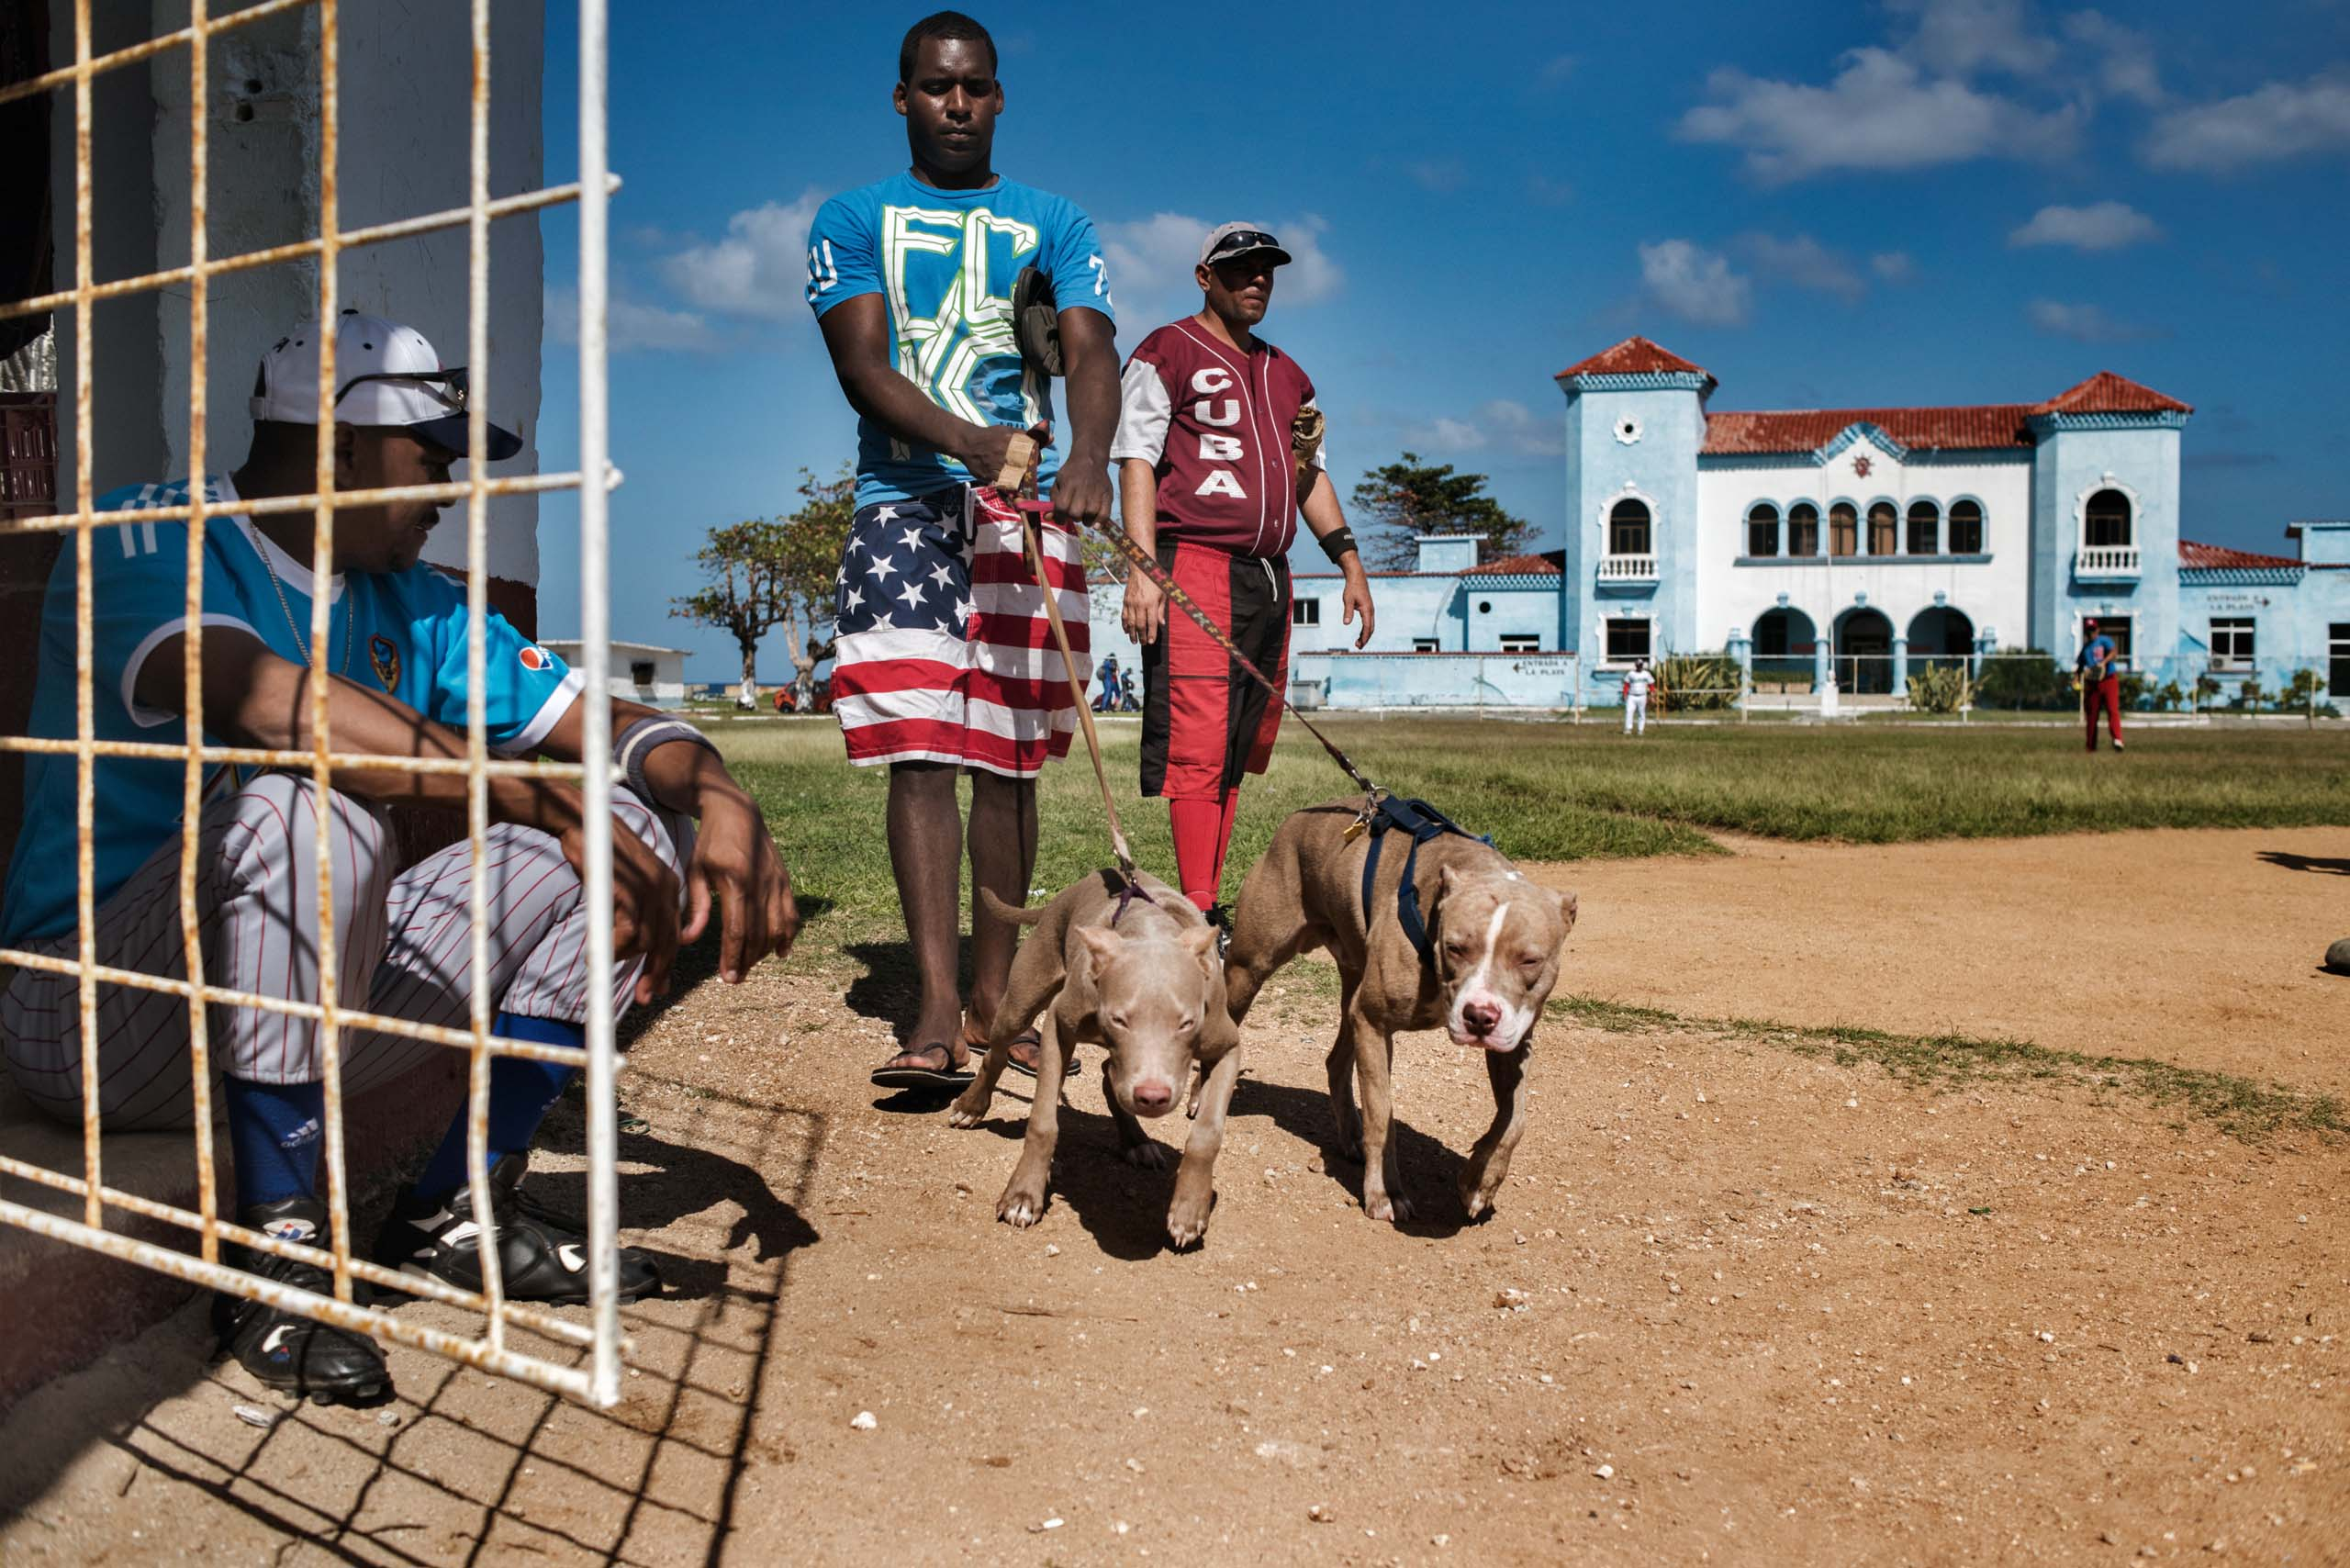 January, 2015. A young Cuban, wearing shorts decorated with the American flag, walks his dogs past a softball field in the Jaimanitas neighborhood of Havana.